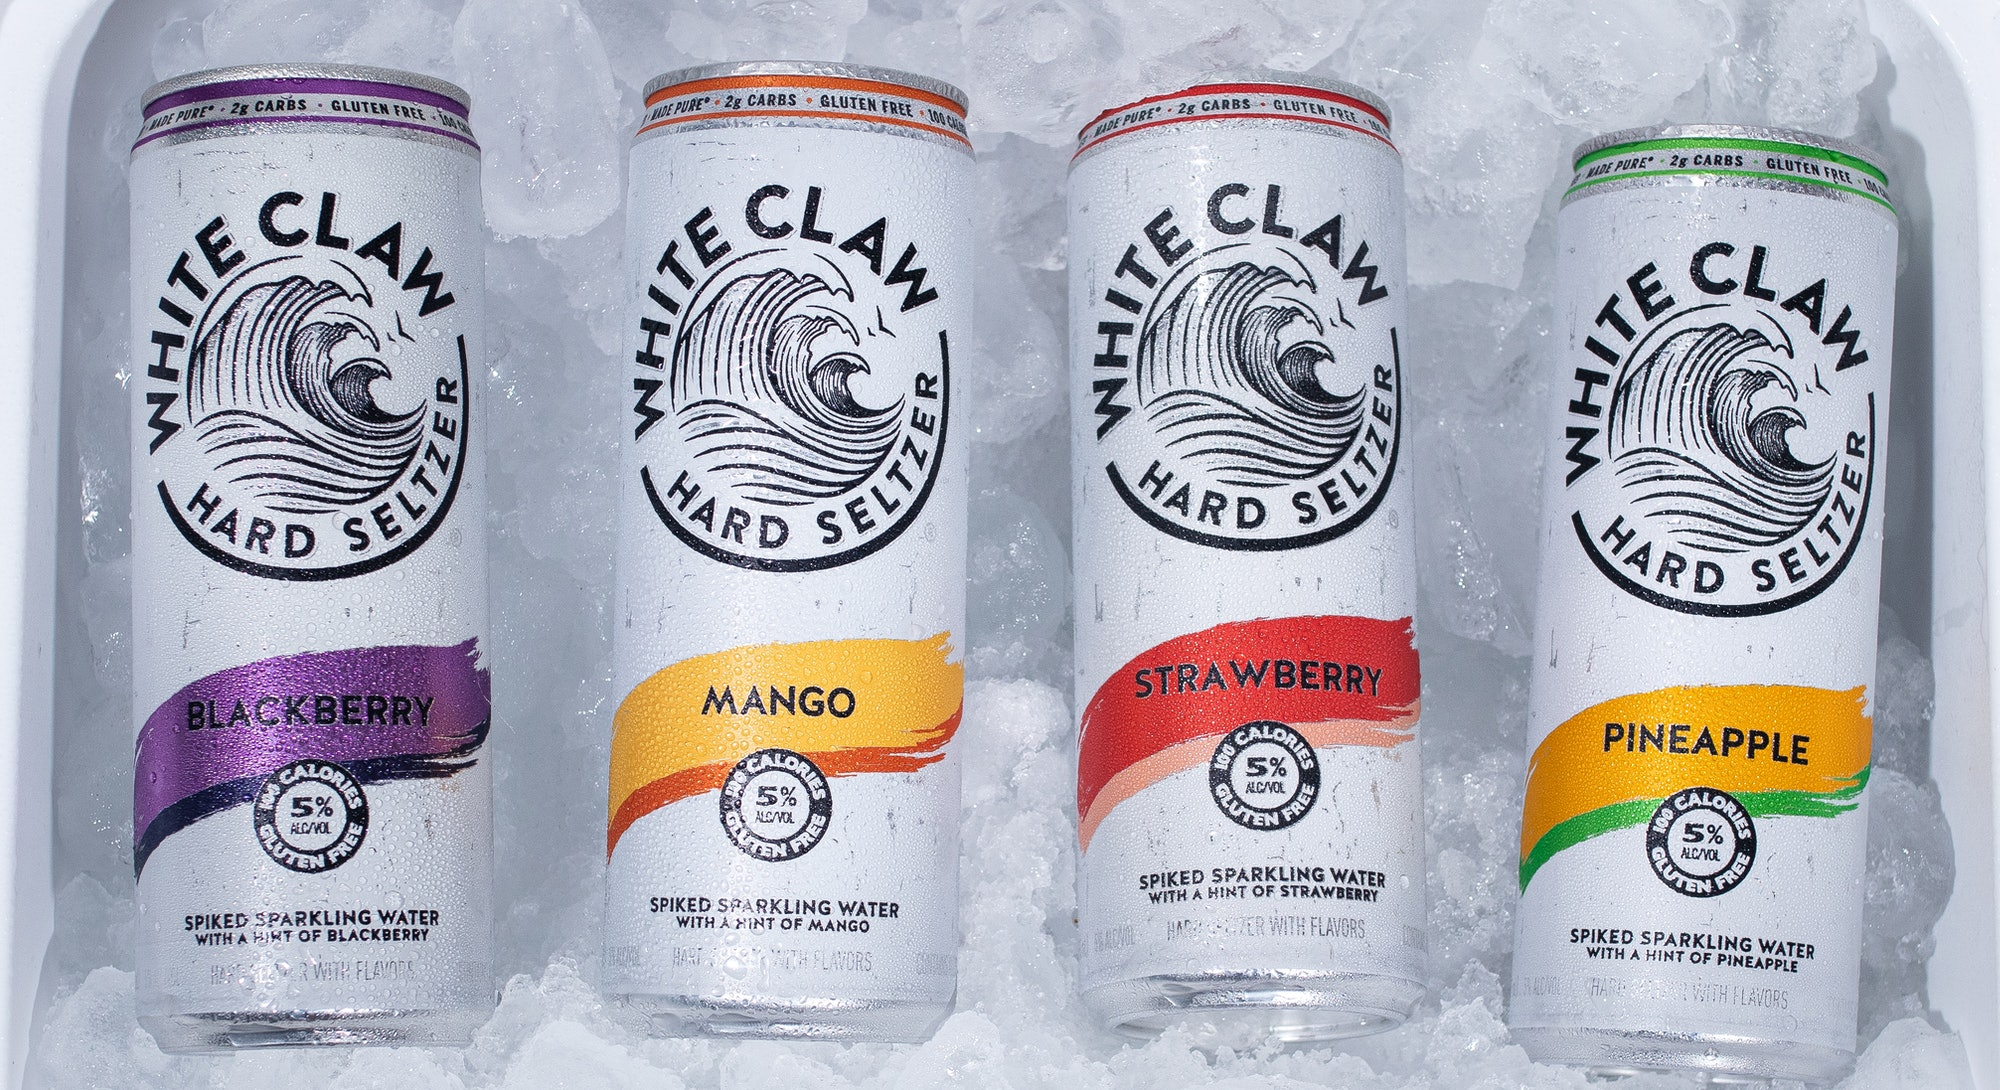 The hard seltzer has 5% ABV whereas White Claw Surge contains 8% ABV.